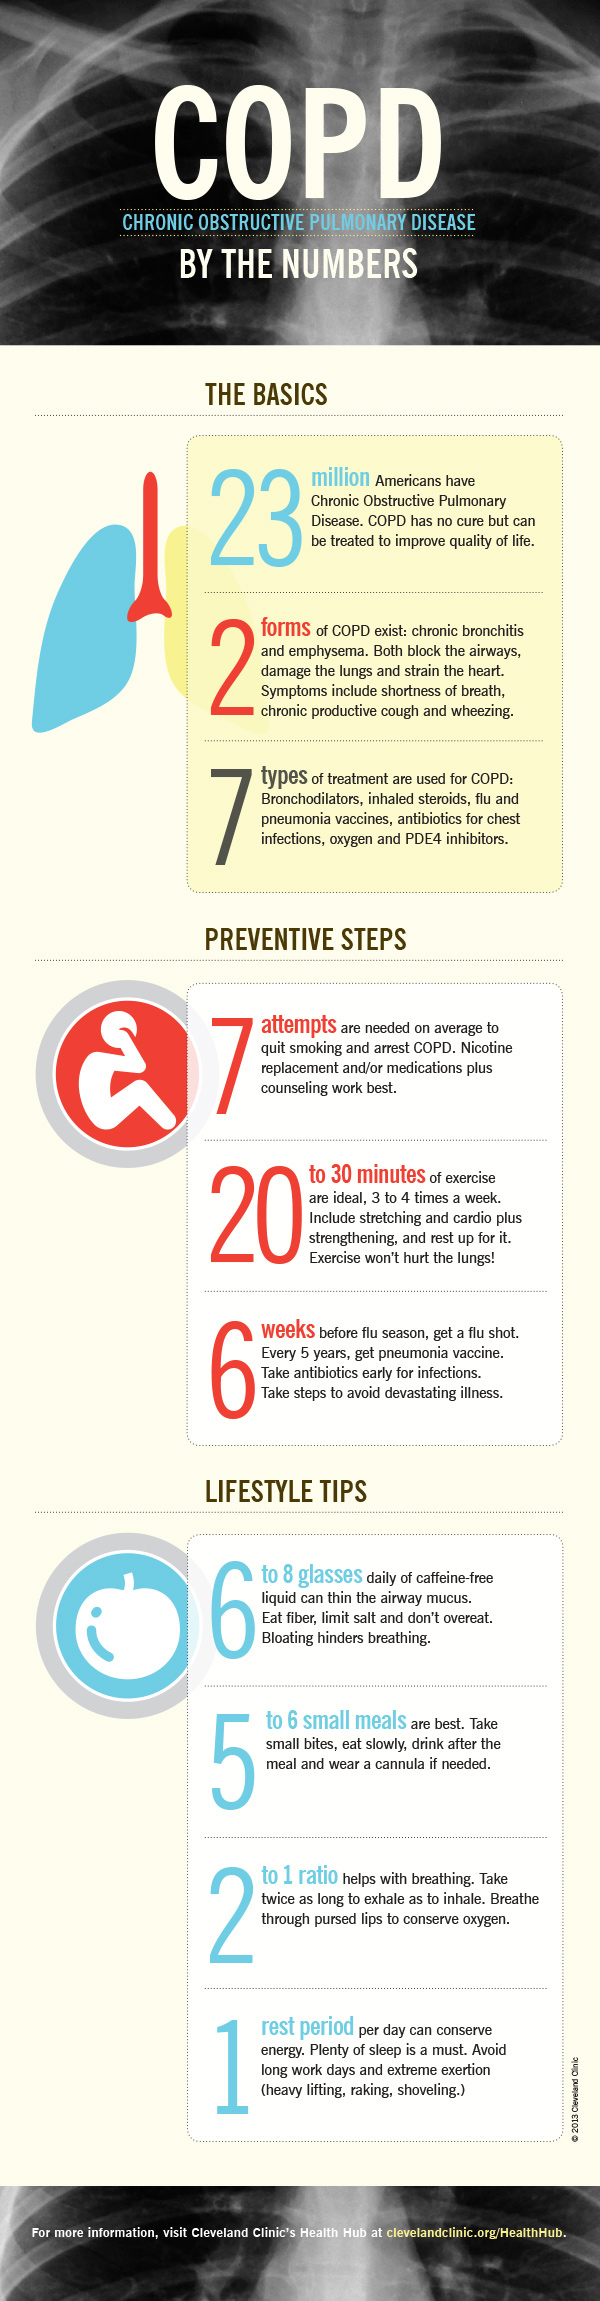 COPD-by-the-Number-Infographic